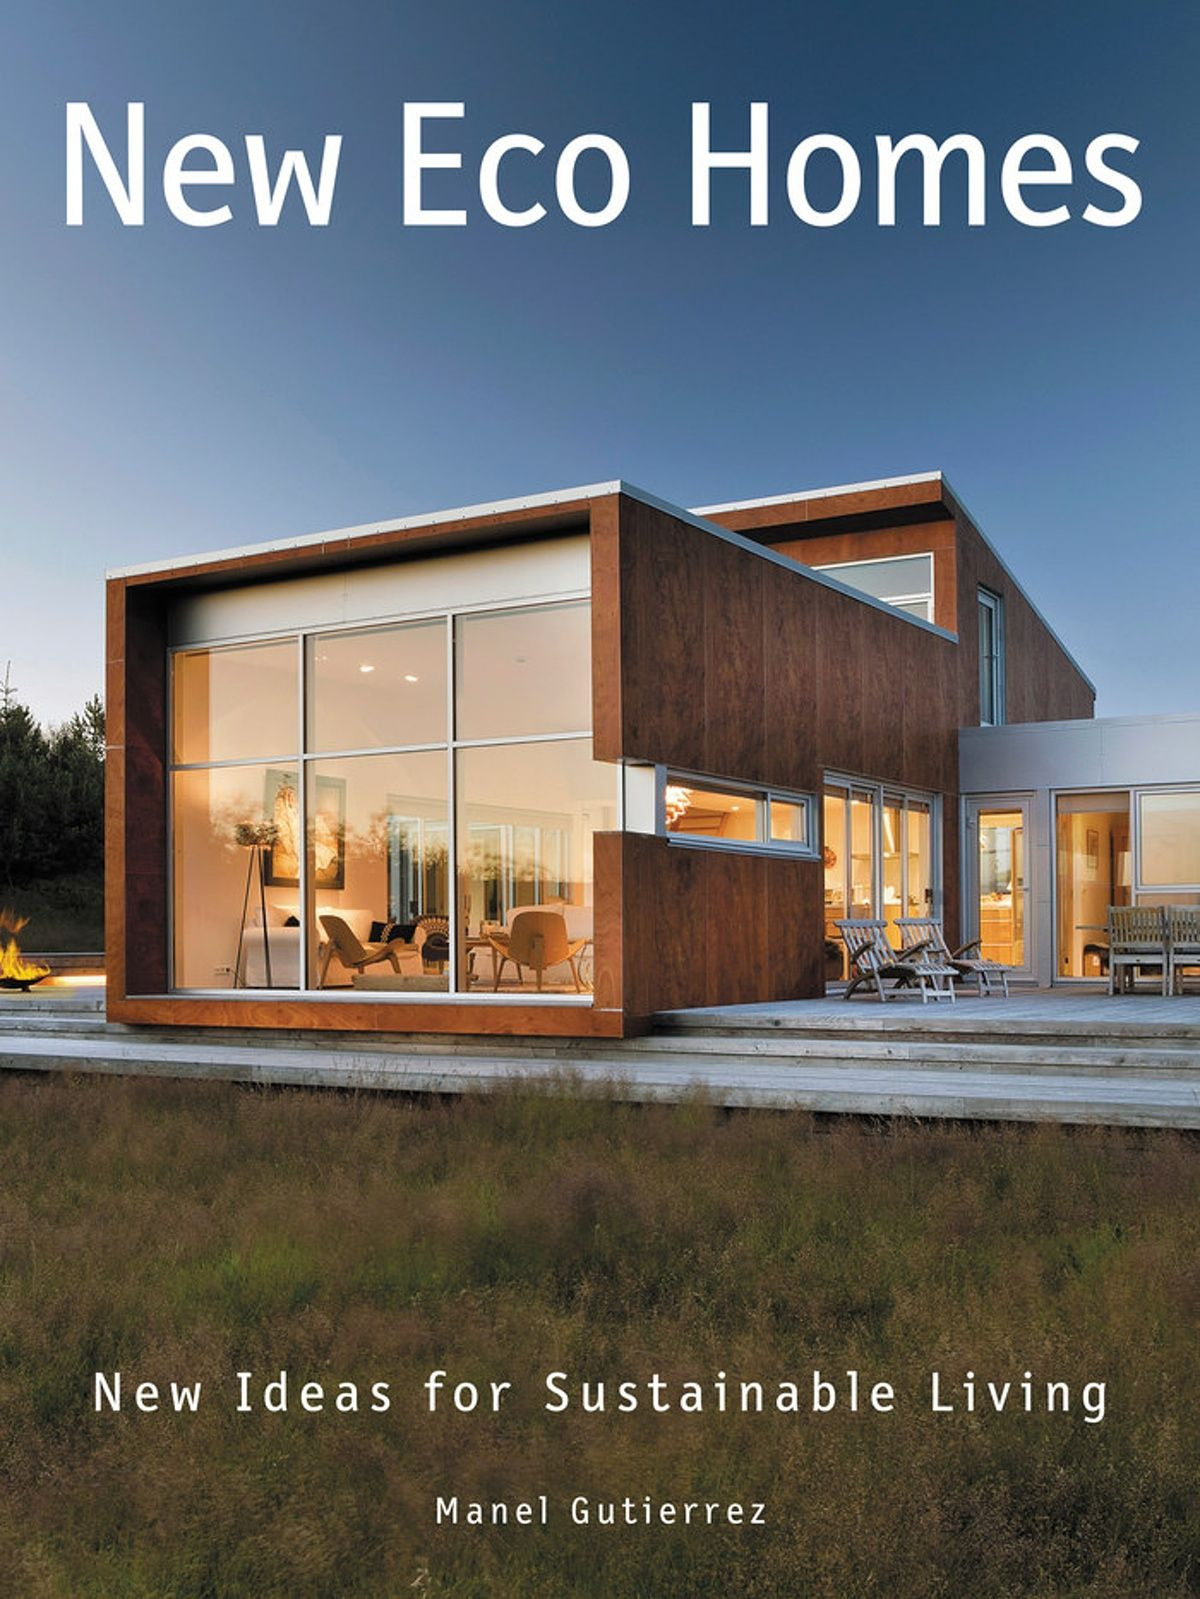 Modern Eco Friendly House Plans Elegant New Eco Homes In Pictures